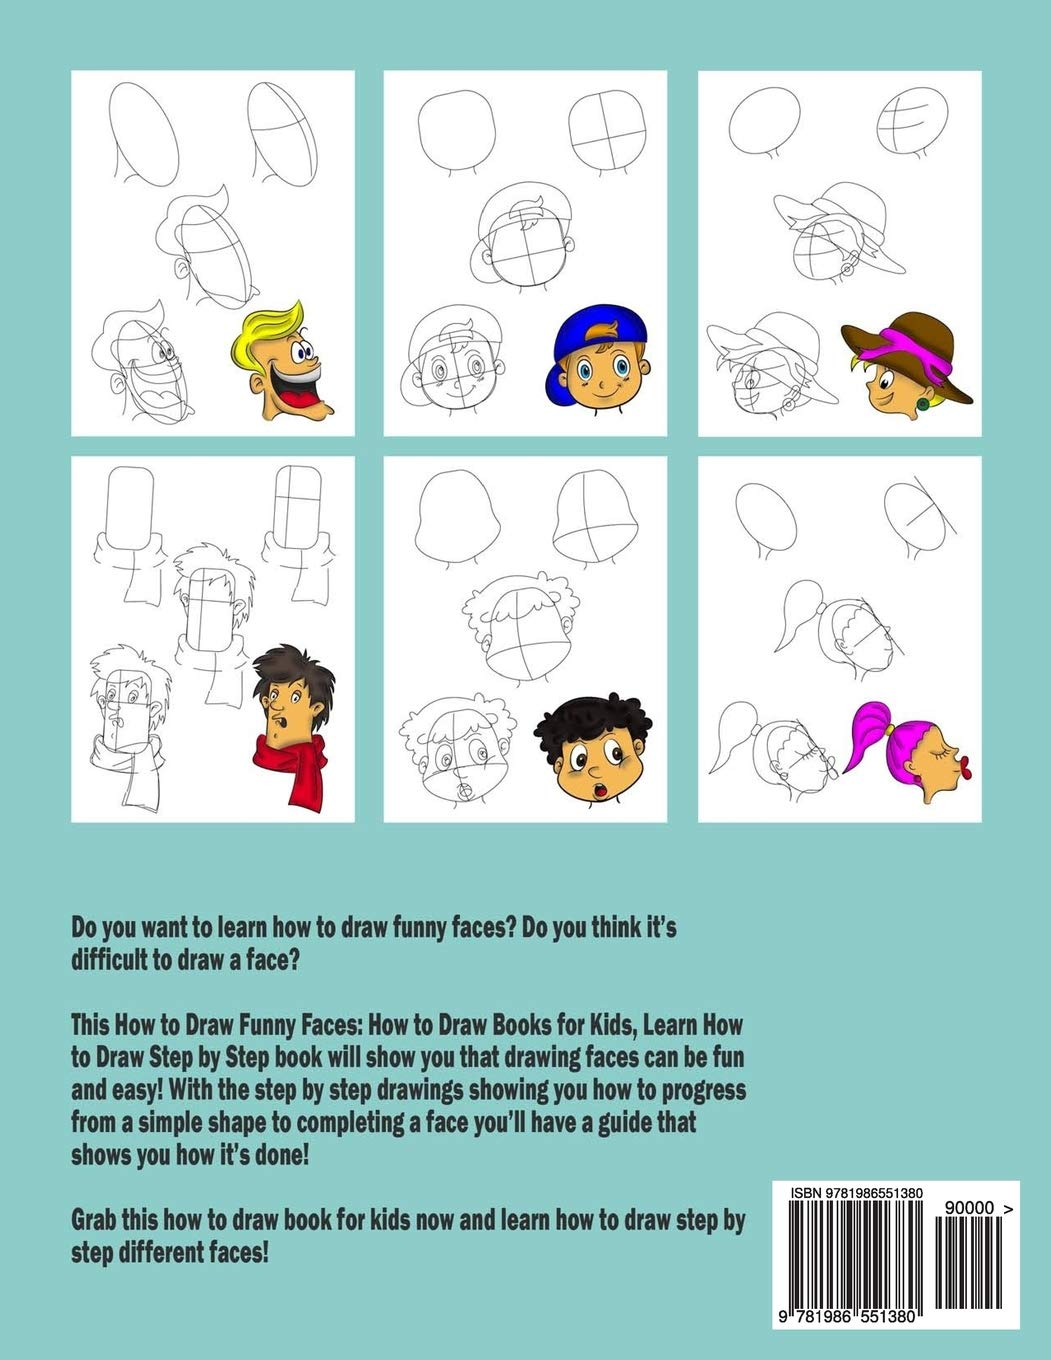 How To Draw Funny Faces How To Draw Books For Kids Learn How To